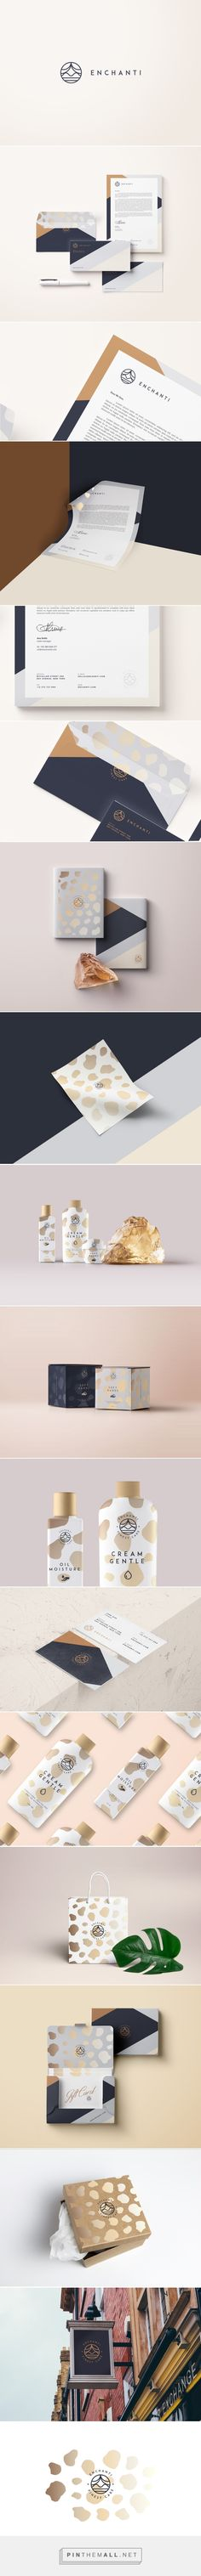 Enchanti Finest Care Cosmetic Branding by Sebastian Bednarek | Fivestar Branding – Design and Branding Agency & Inspiration Gallery